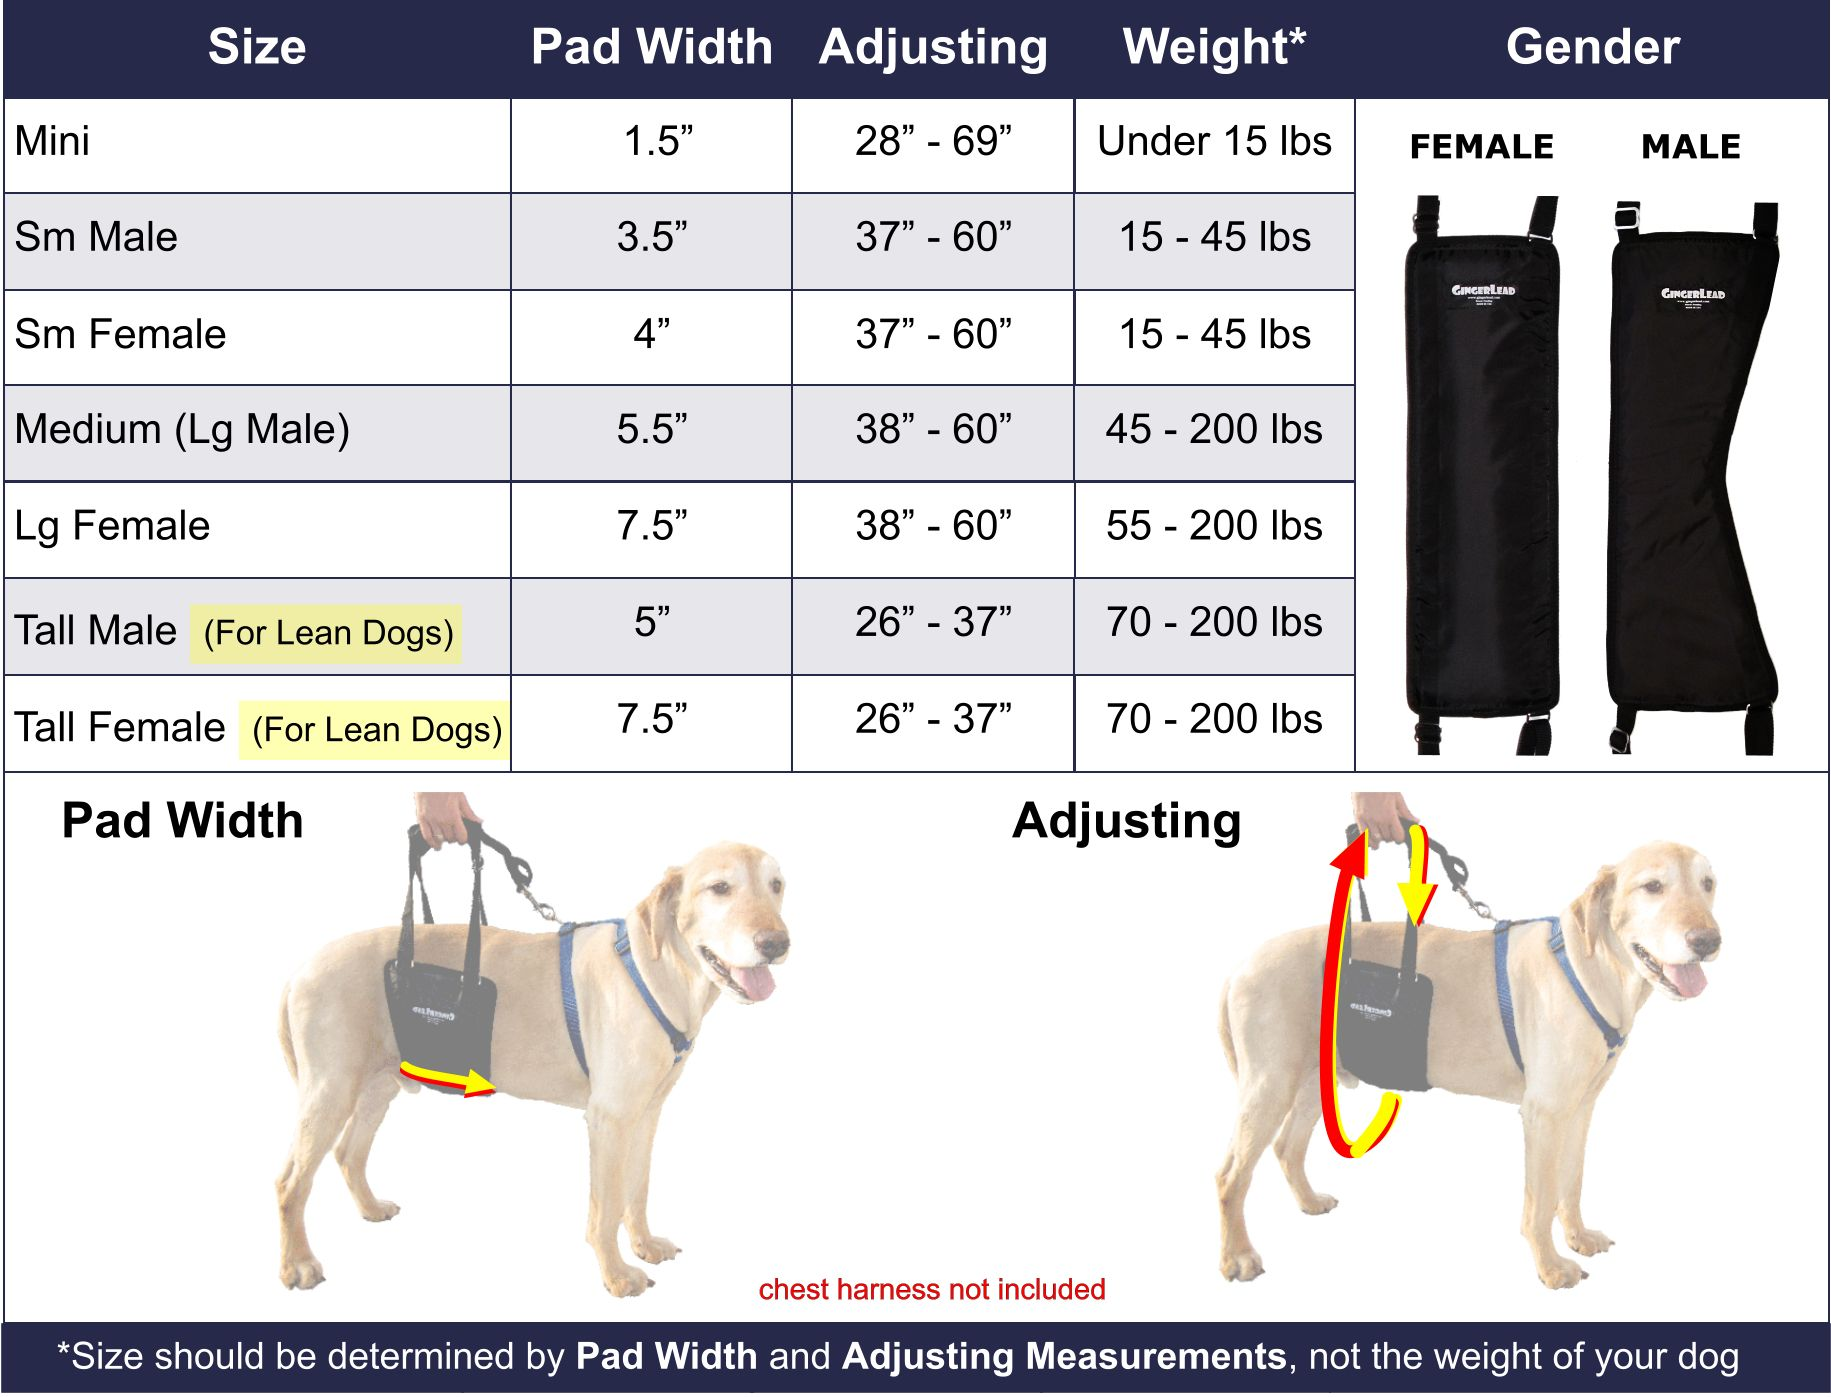 Gingerlead Dog Support Rehabilitation Harness Sizing Chart Fits